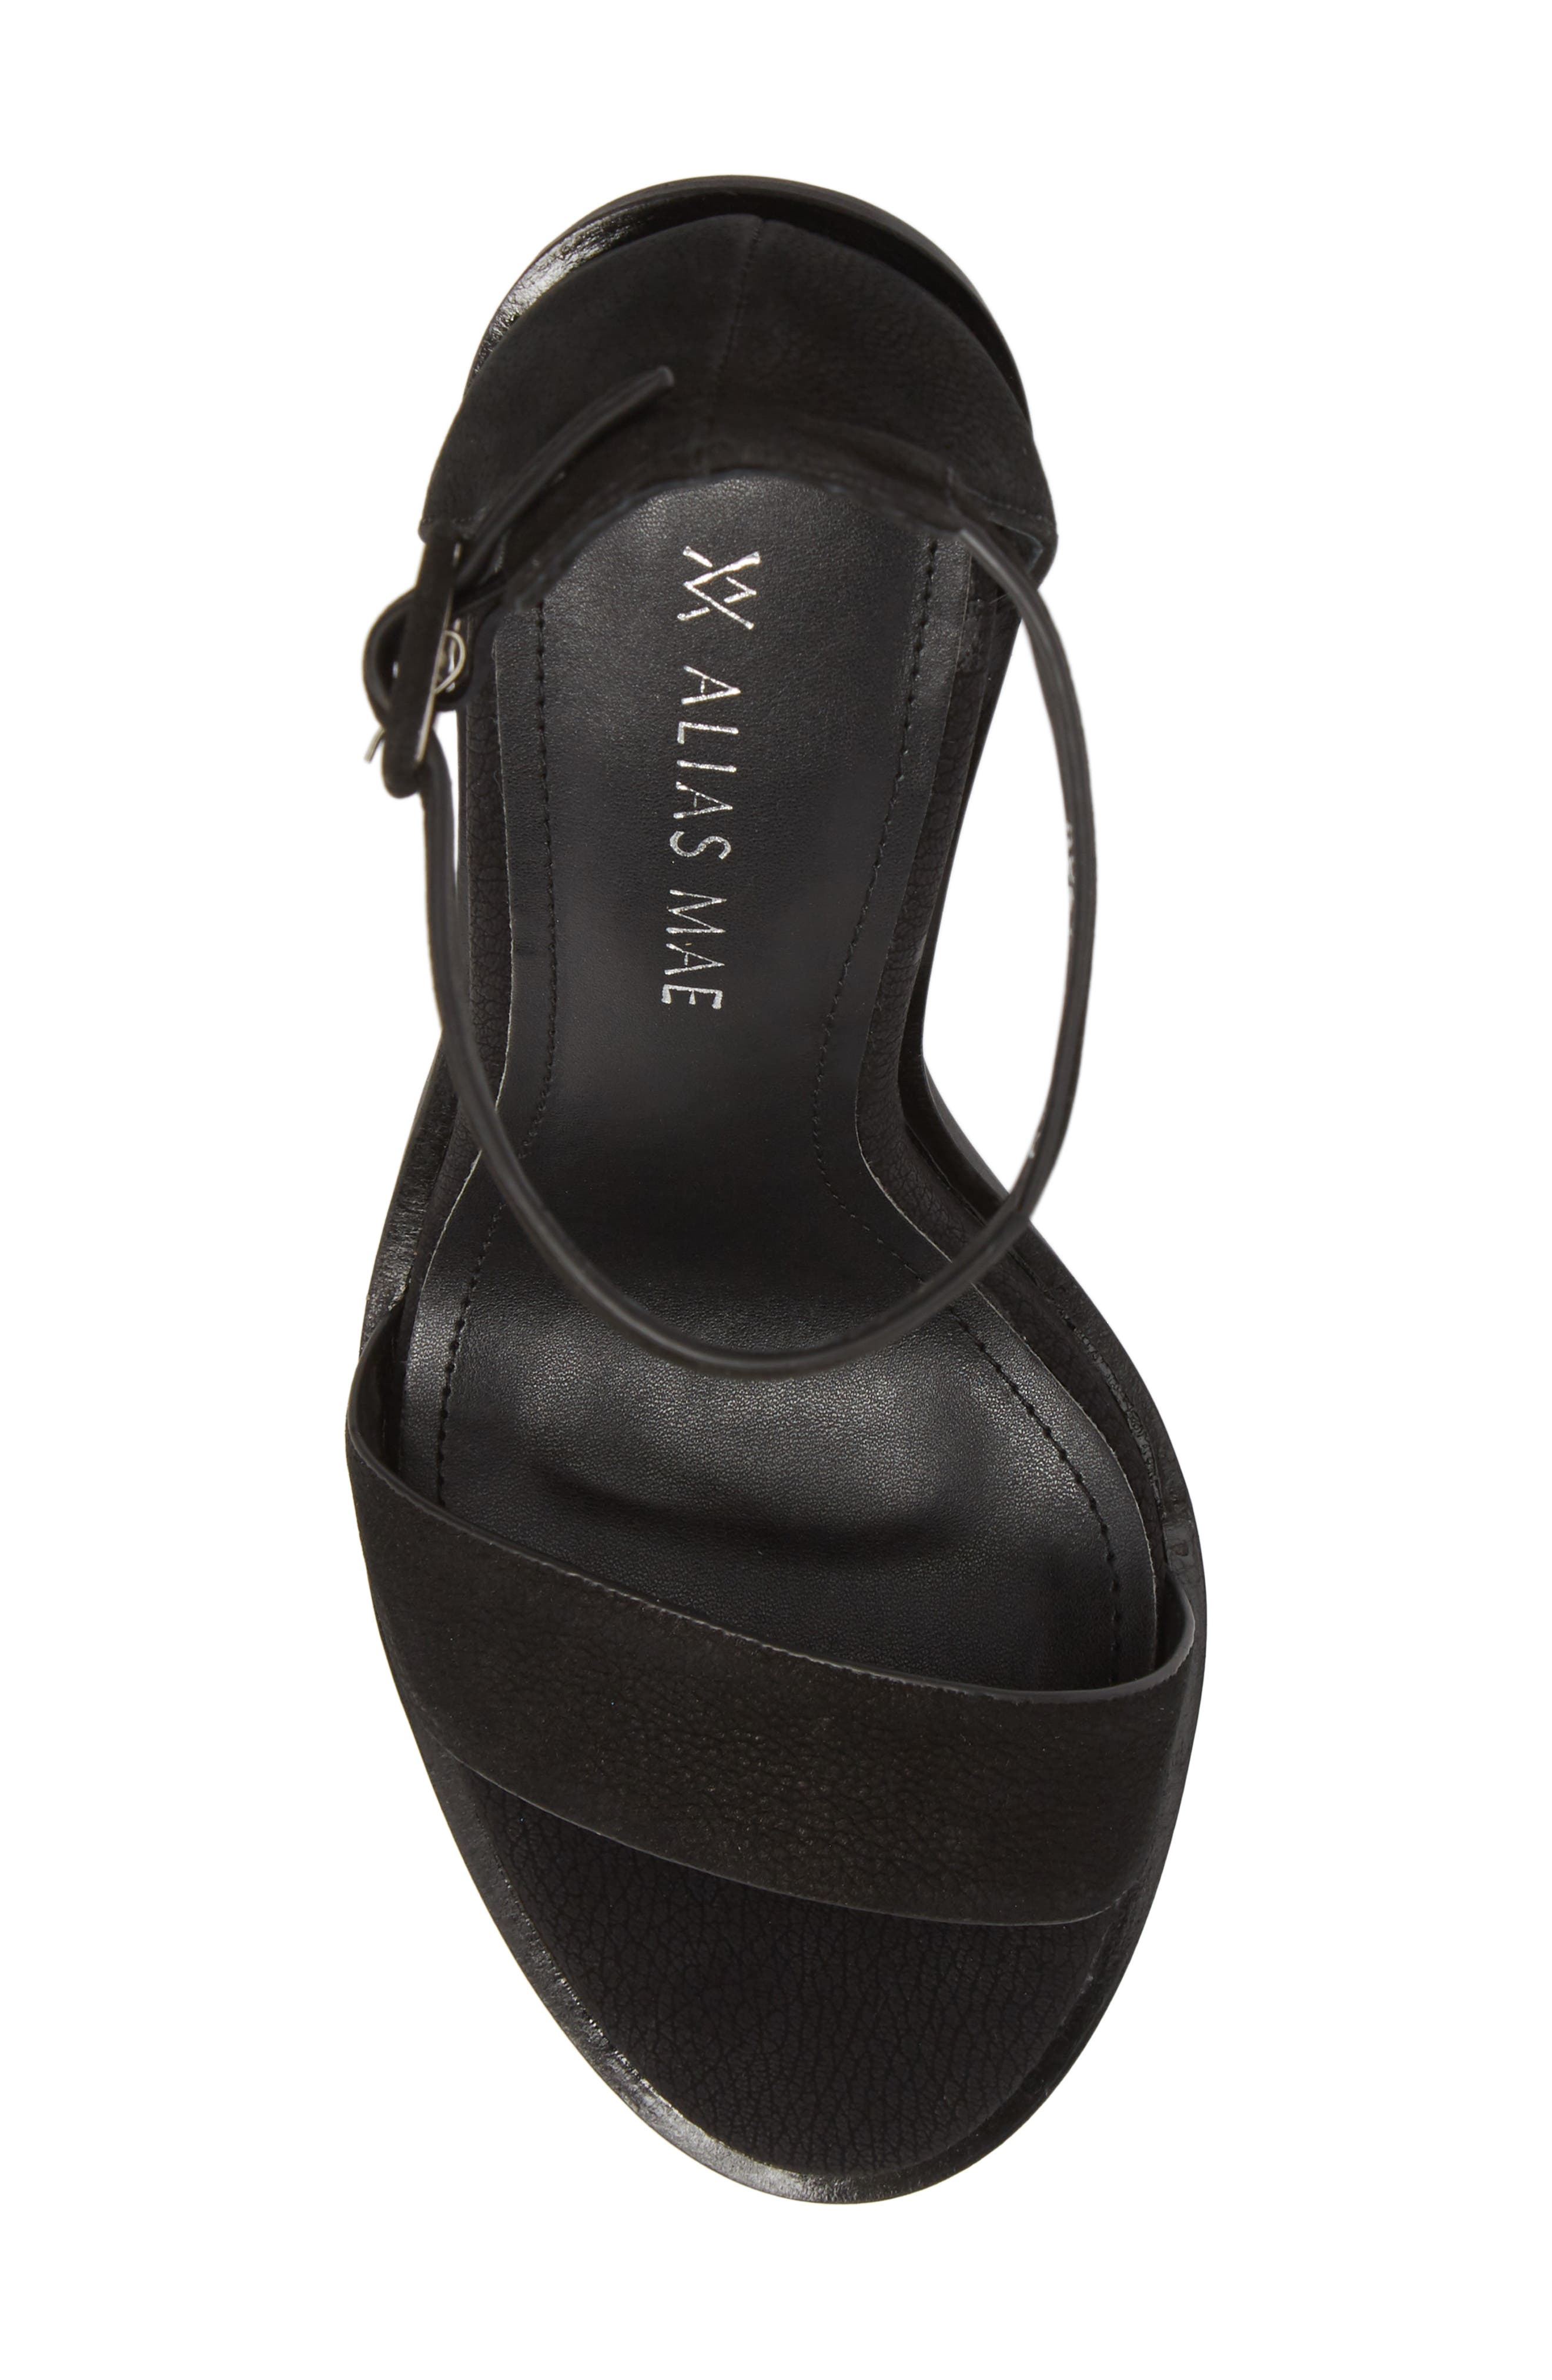 Addax Sandal,                             Alternate thumbnail 5, color,                             BLACK NUBUCK LEATHER